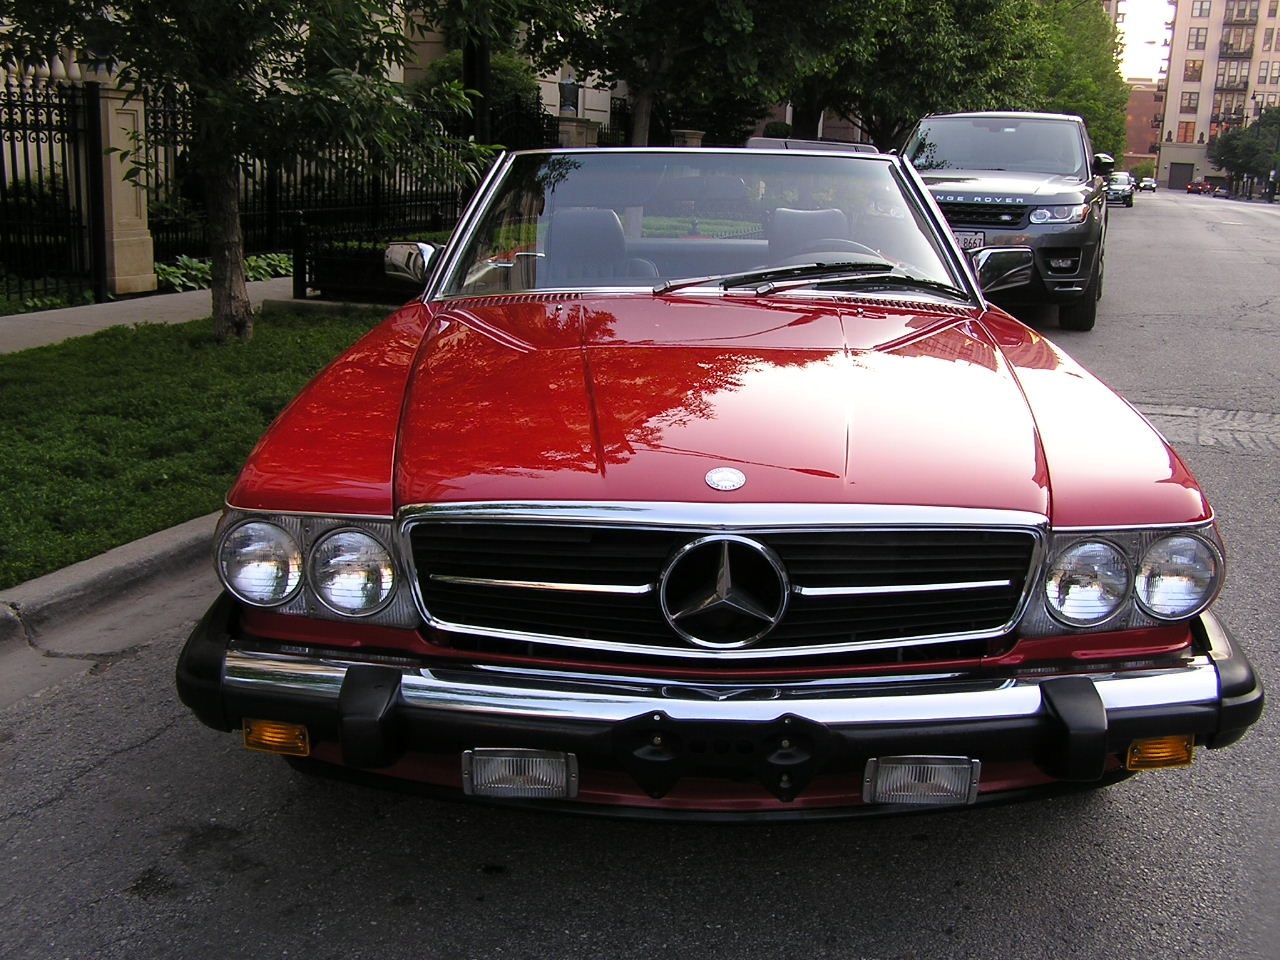 1987 mercedes benz 560 sl stock 74190 for sale near for Mercedes benz nearby